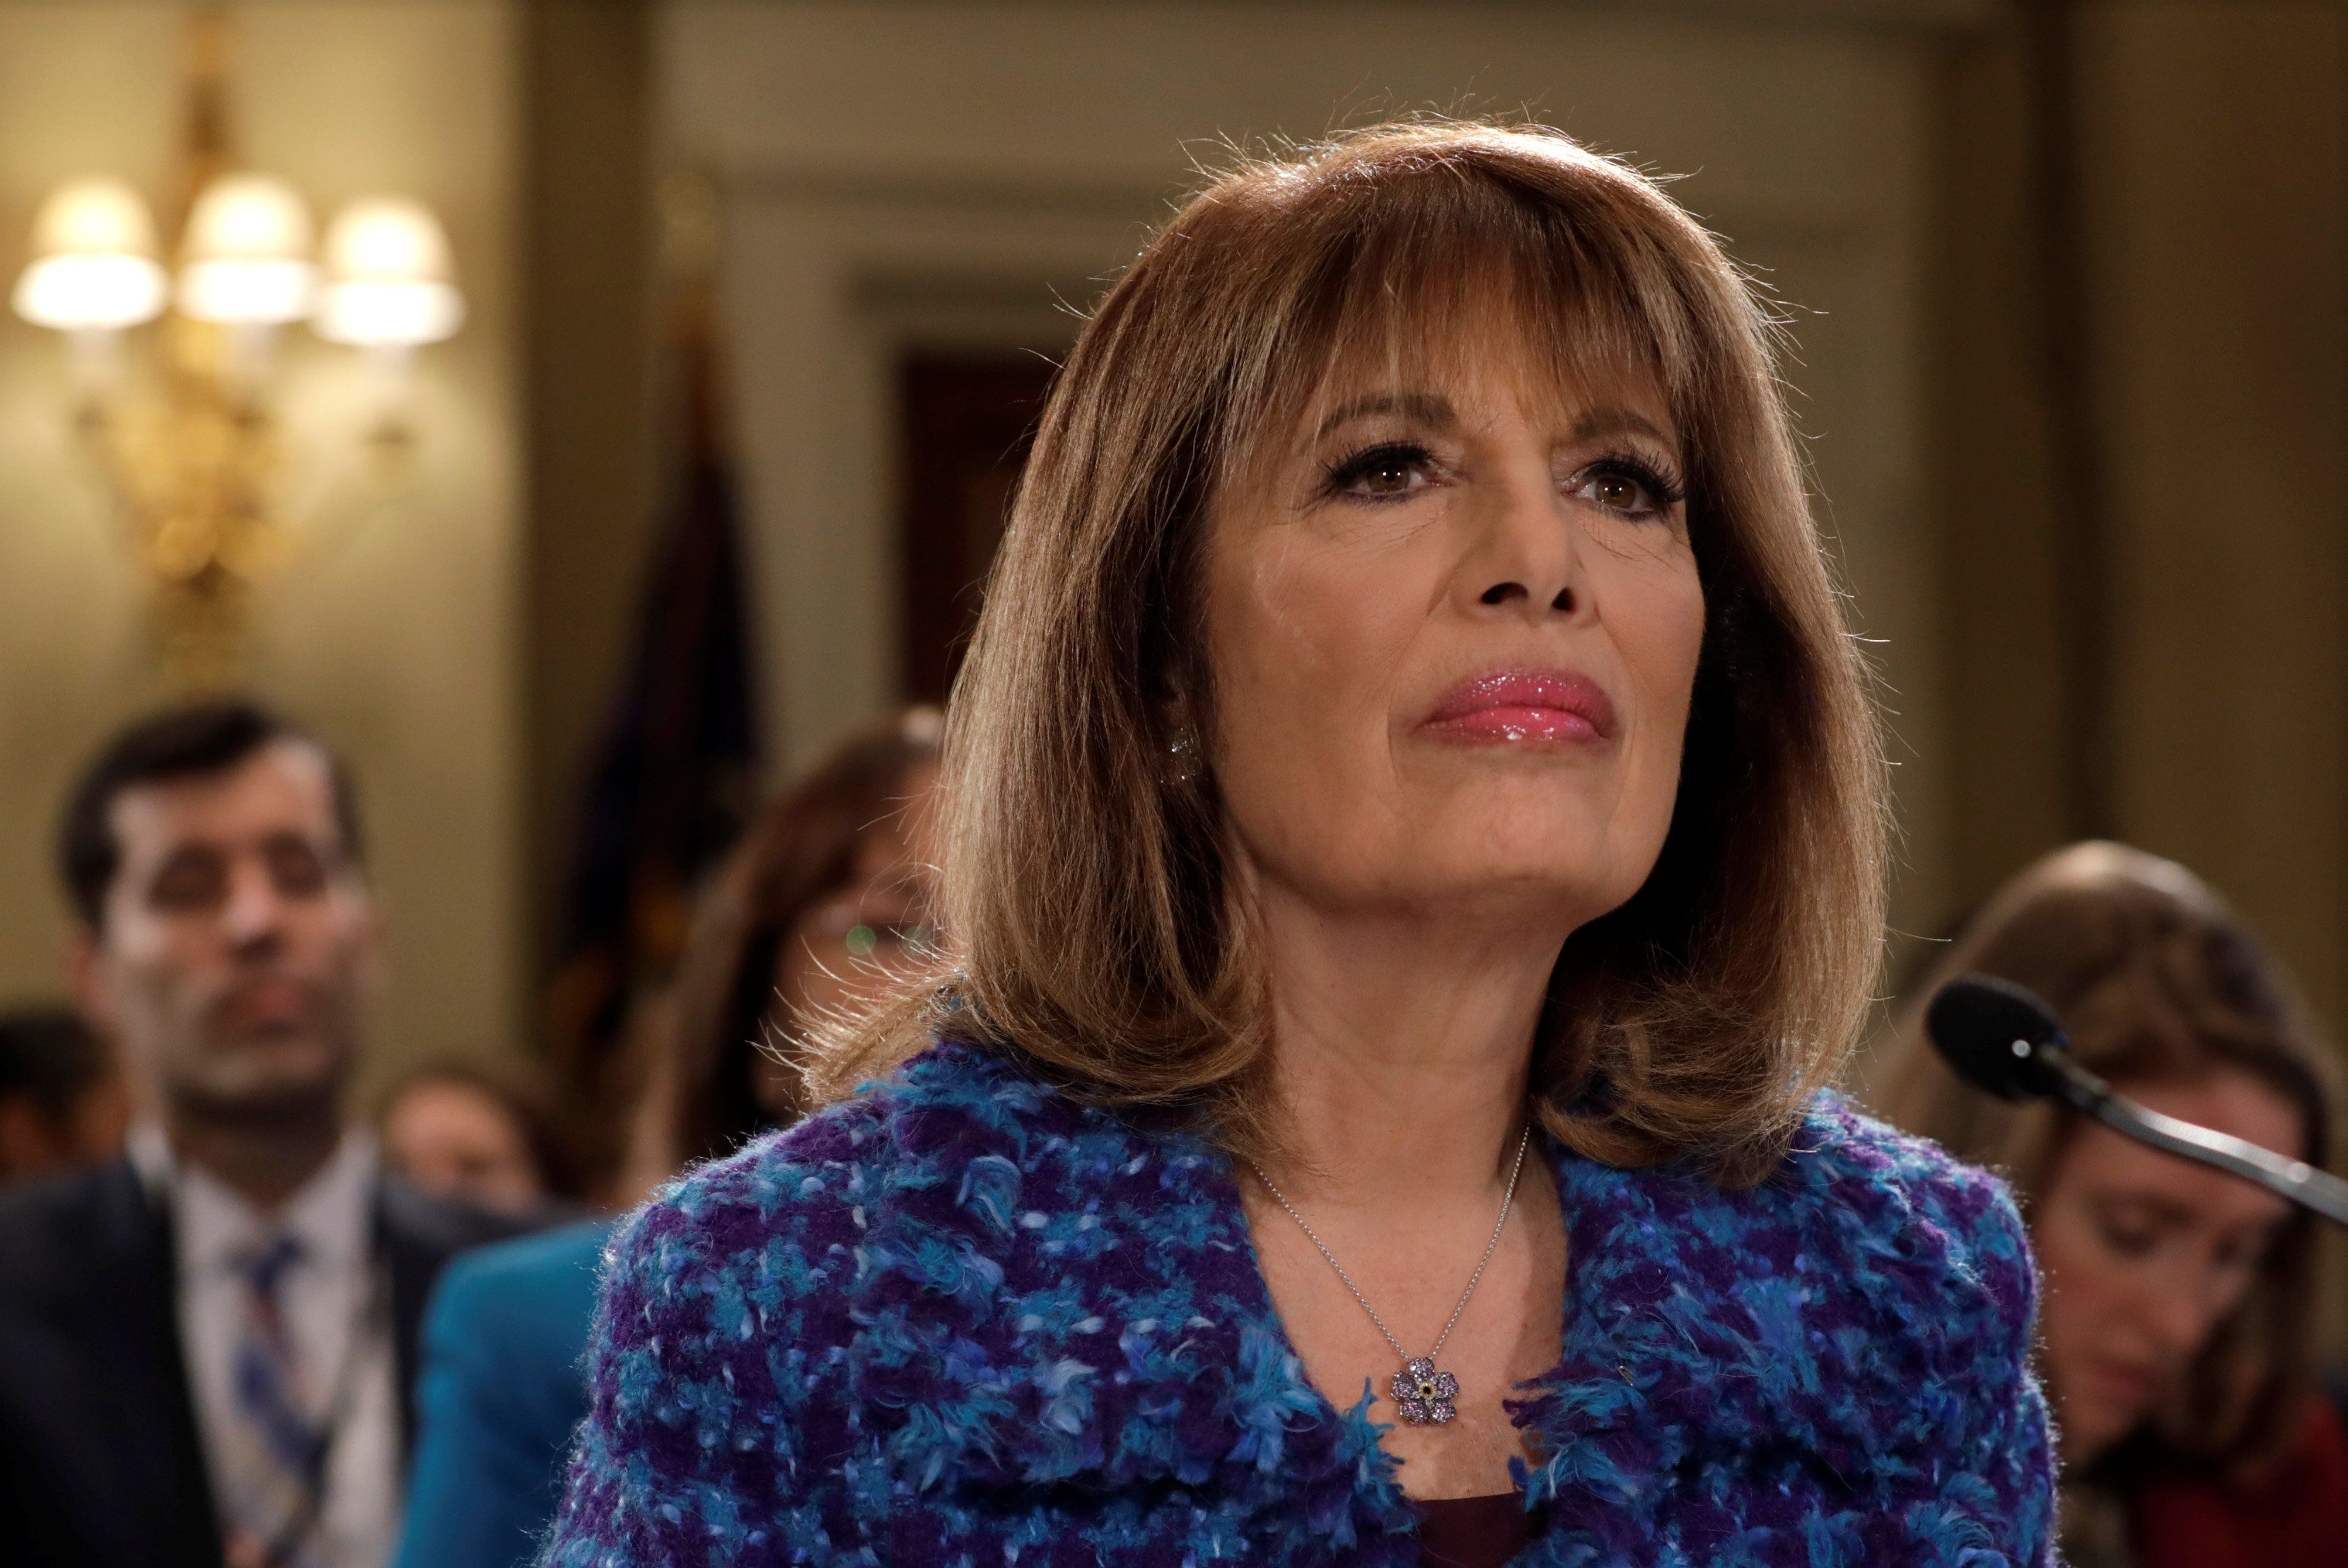 Rep. Jackie Speier (D-CA) waits to testify before a House Administration hearing on Preventing Sexual Harassment in the Congressional Workplace on Capitol Hill in Washington, U.S., November 14, 2017. REUTERS/Yuri Gripas